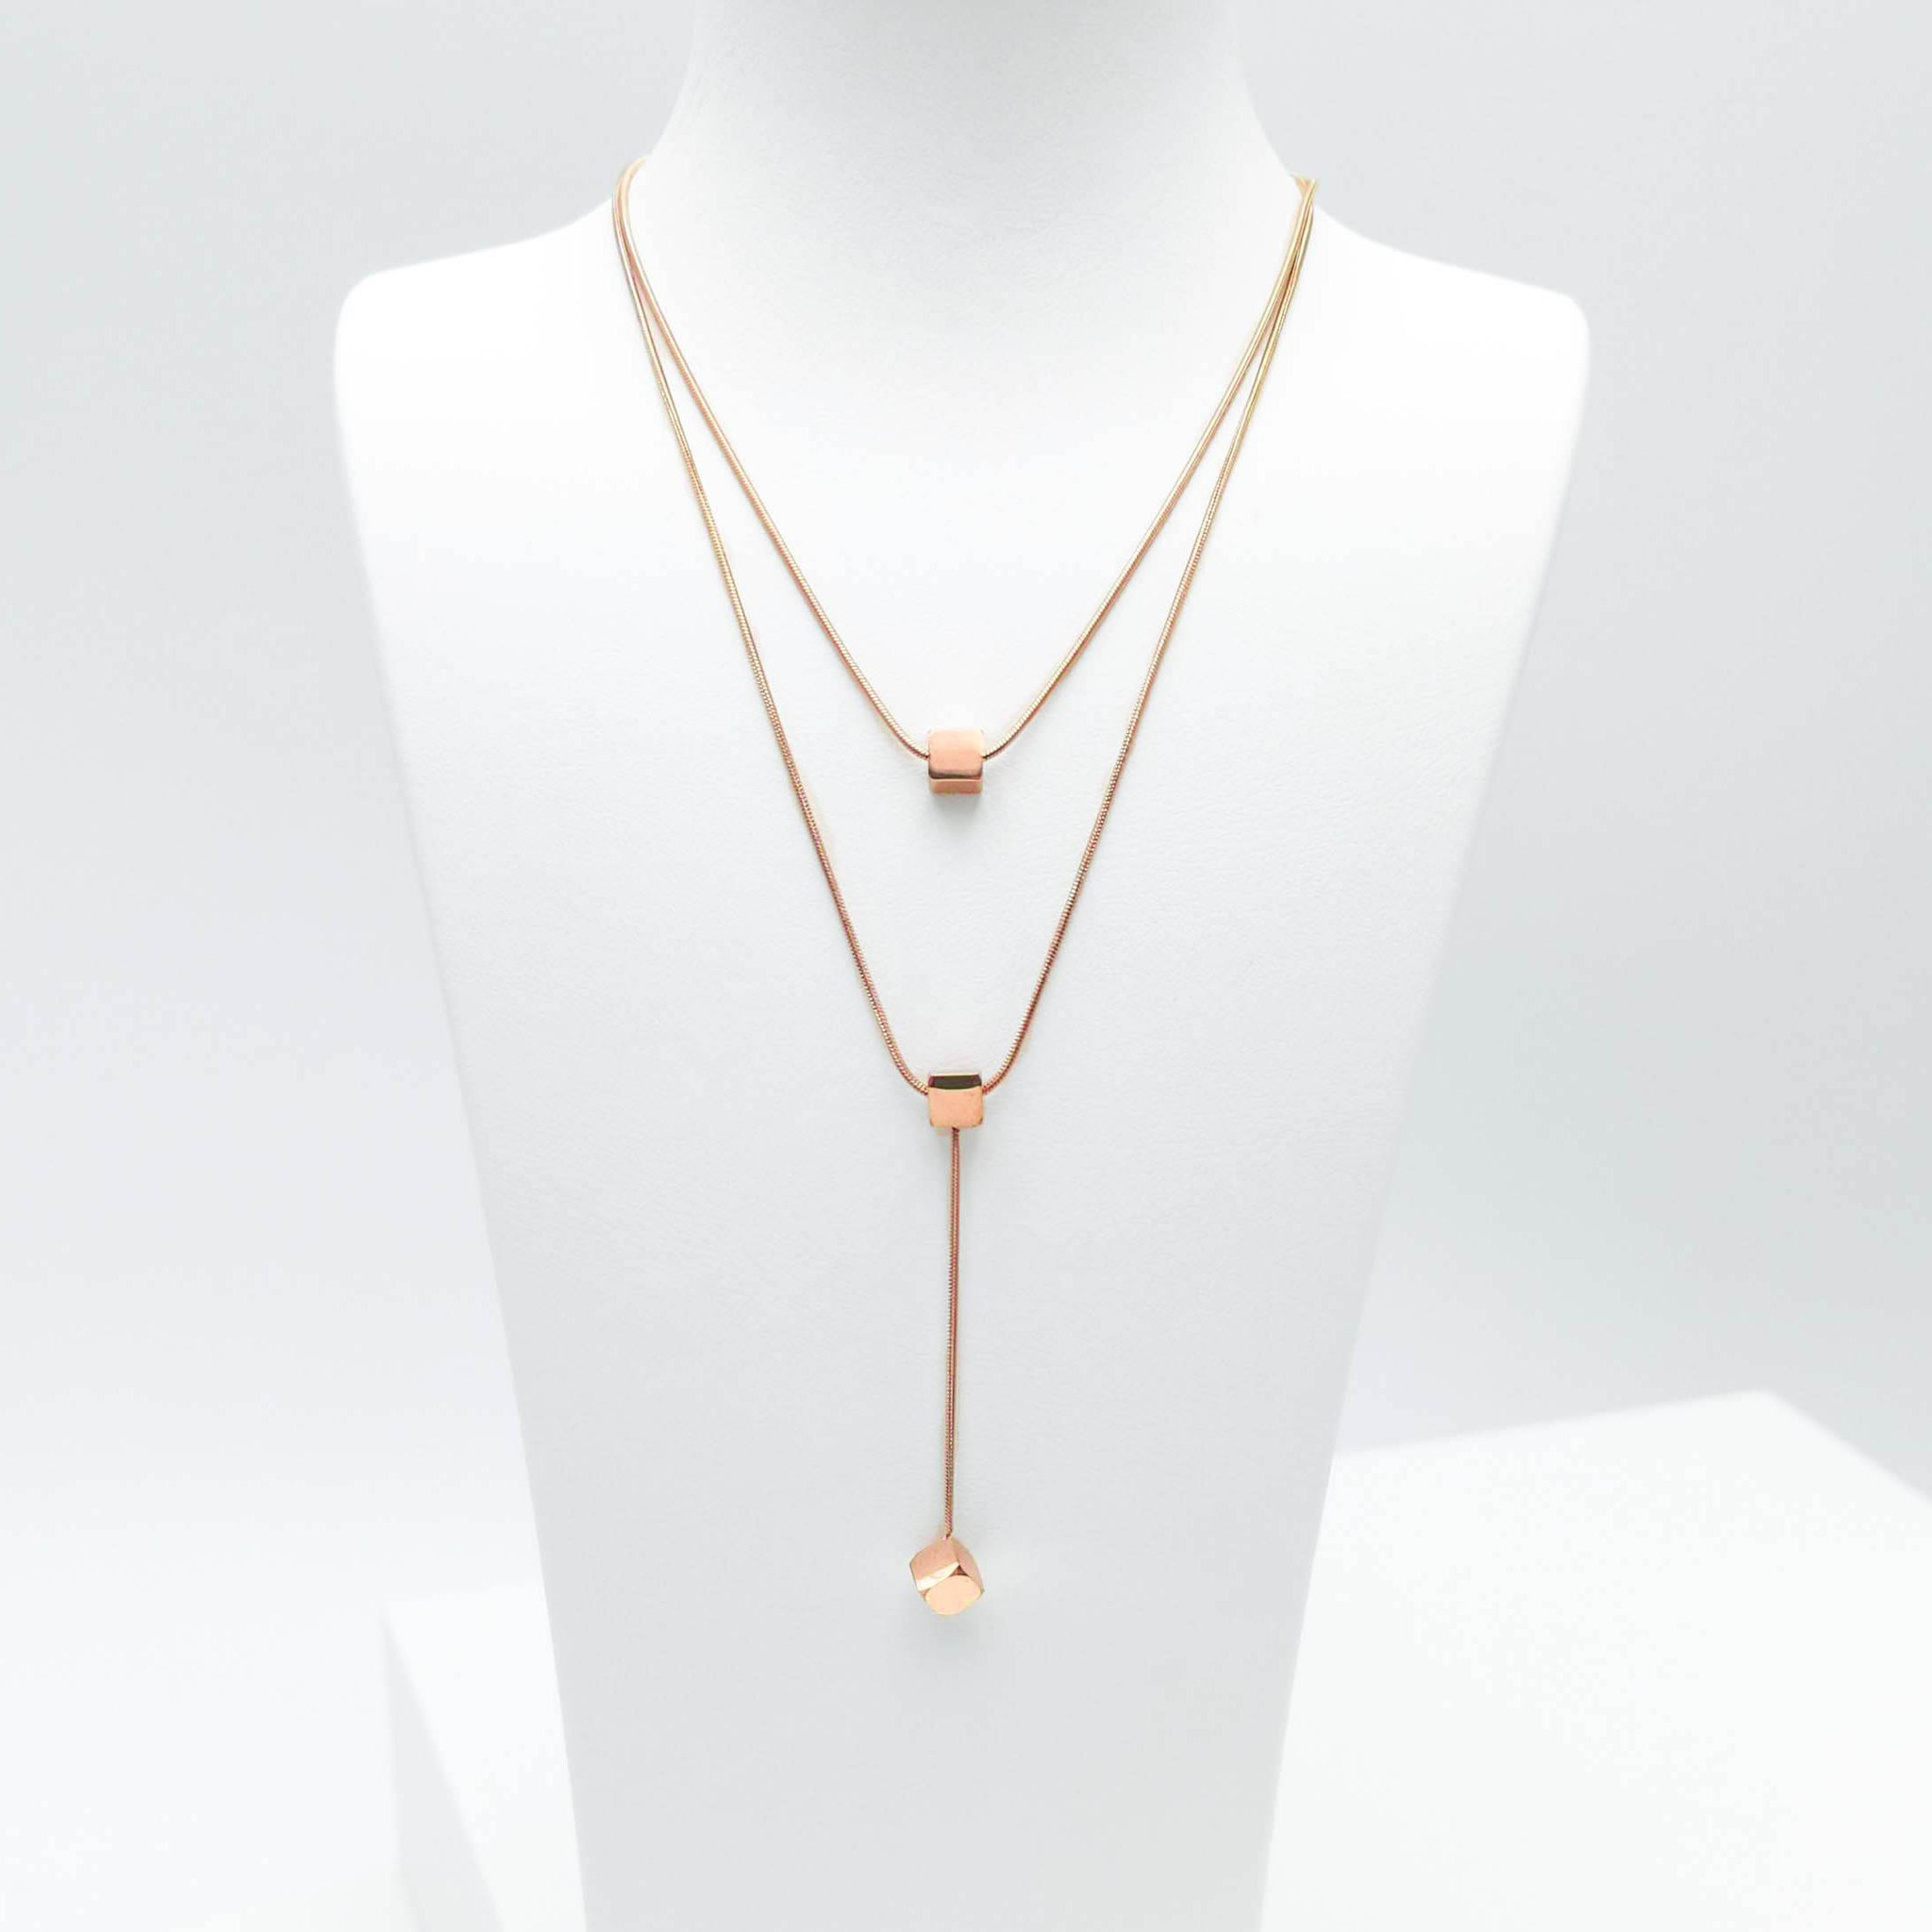 1- Charisma Lucky Orbits Halsband Modern and trendy Necklace and women jewelry and accessories from SWEVALI fashion Sweden